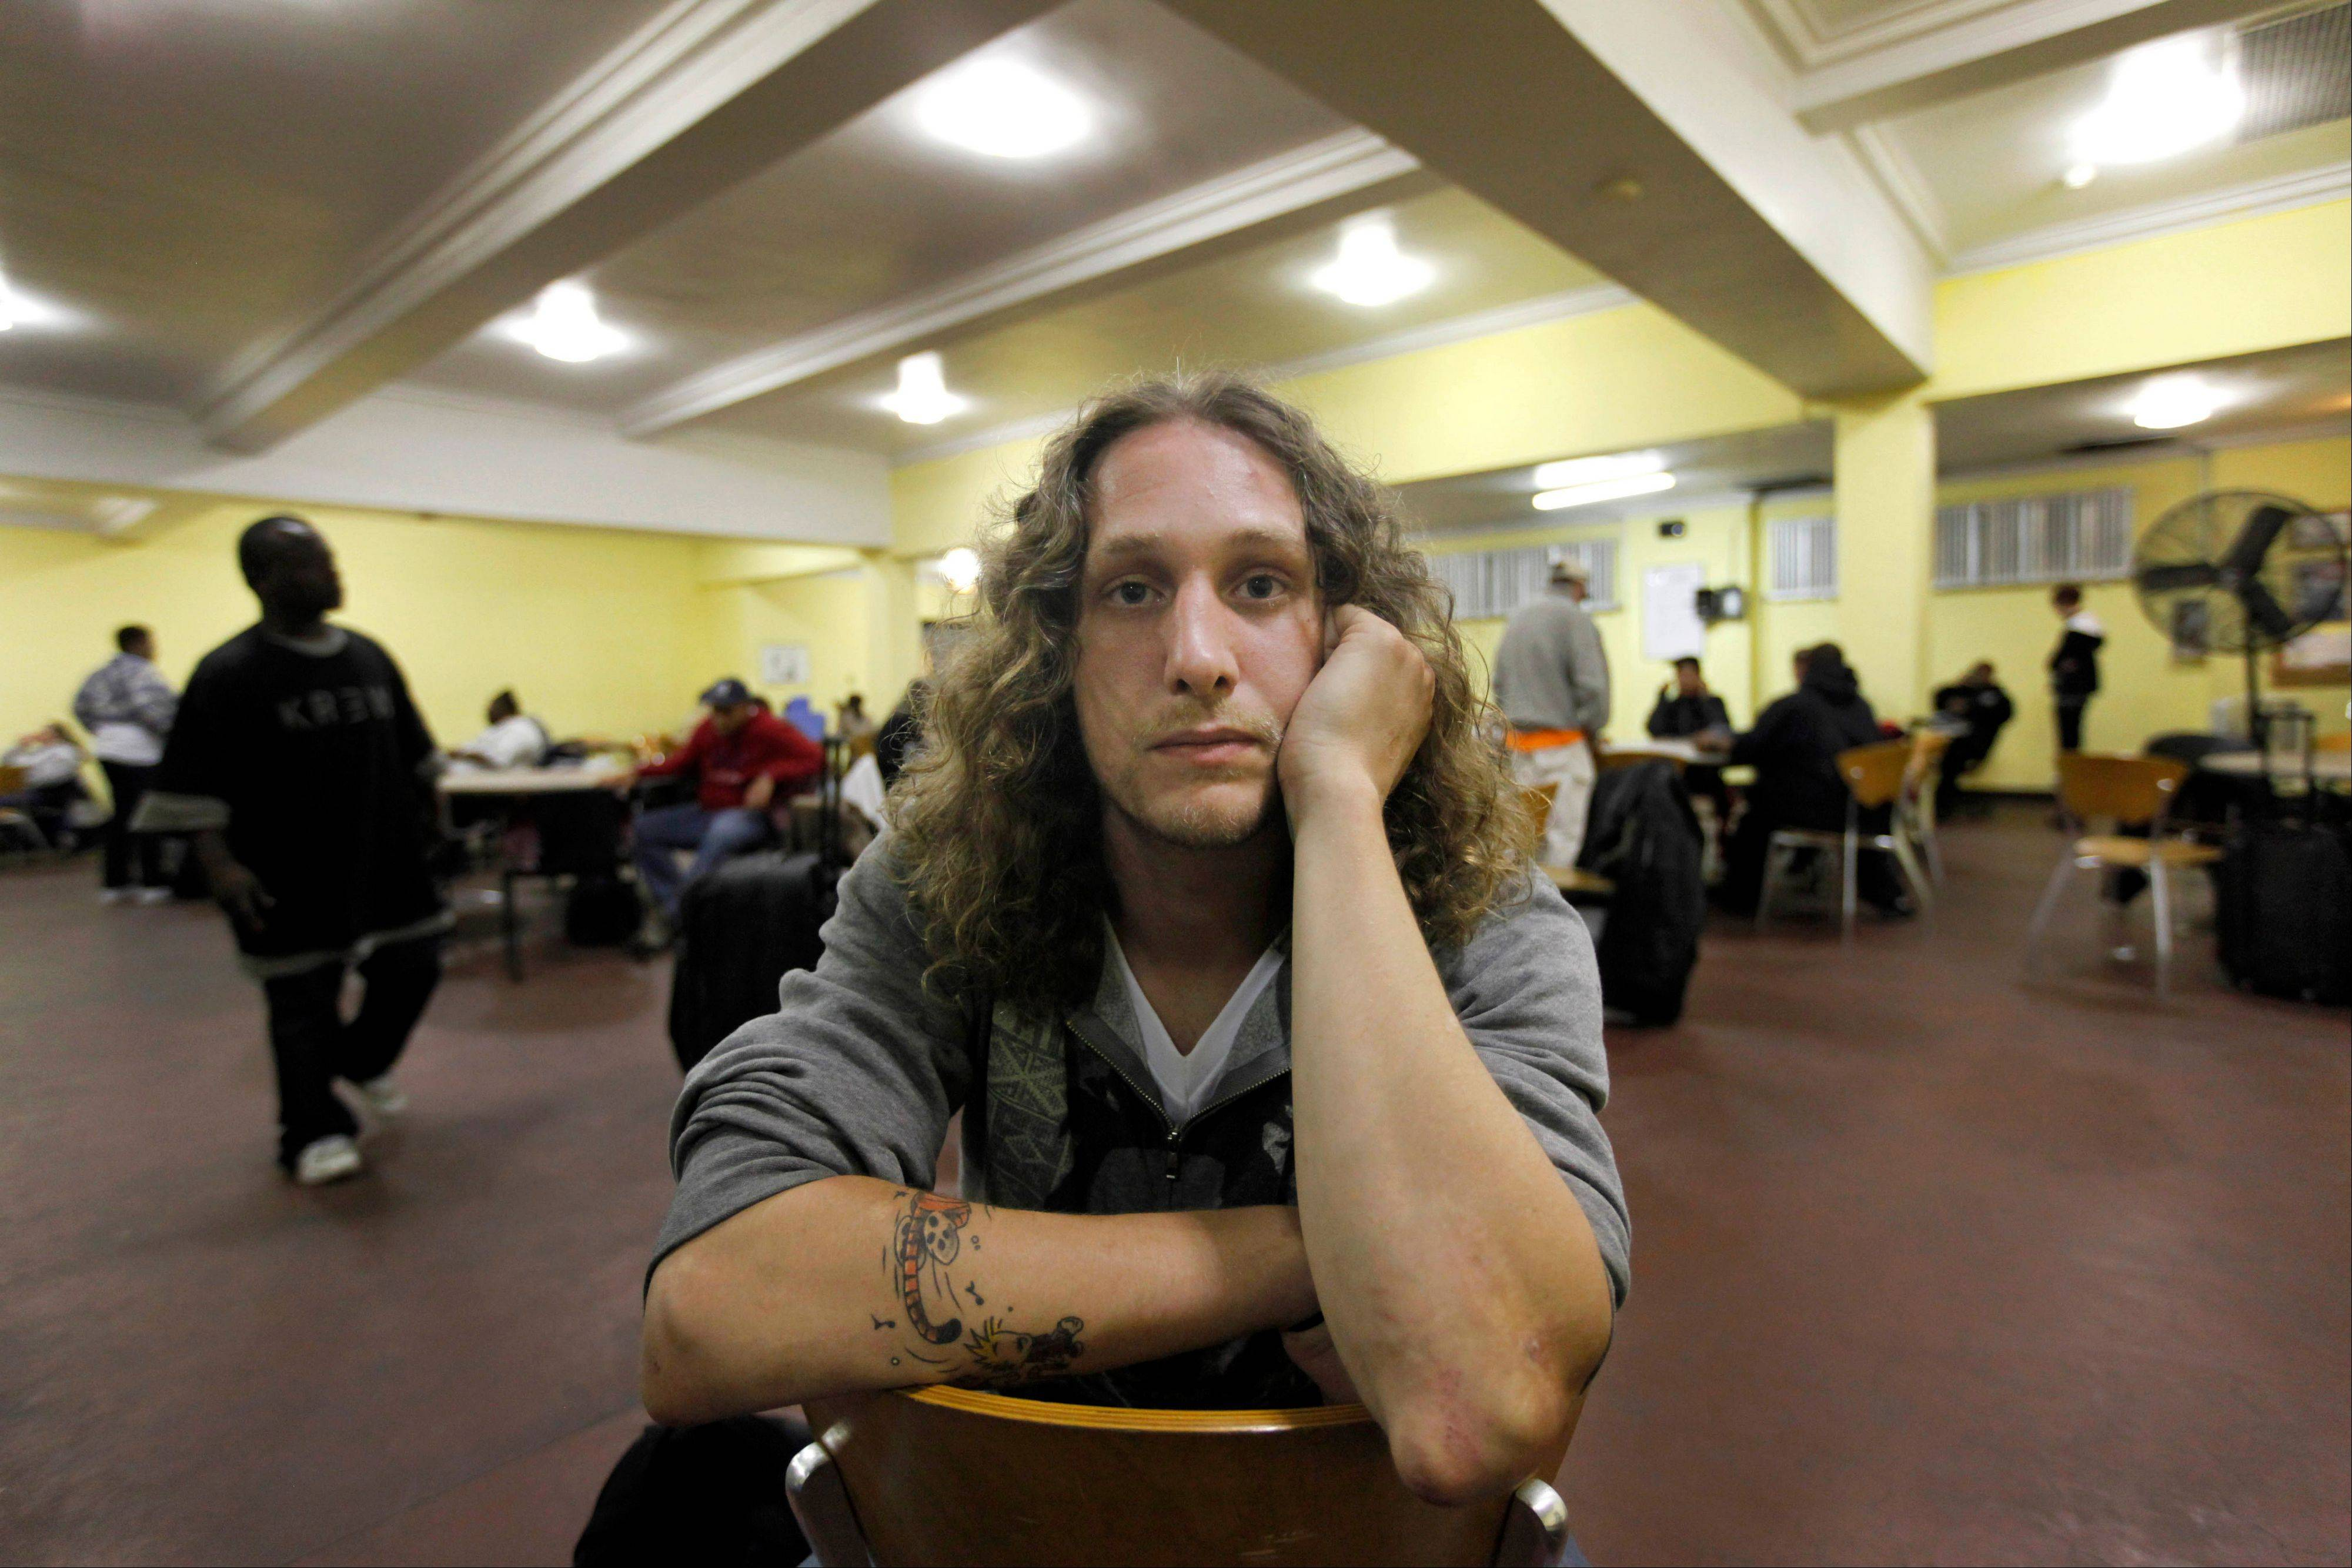 Colin Cook, 26, poses for a portrait at the multipurpose room of the REST Shelter in Chicago where he will be sleeping for two nights before finally getting his own place.